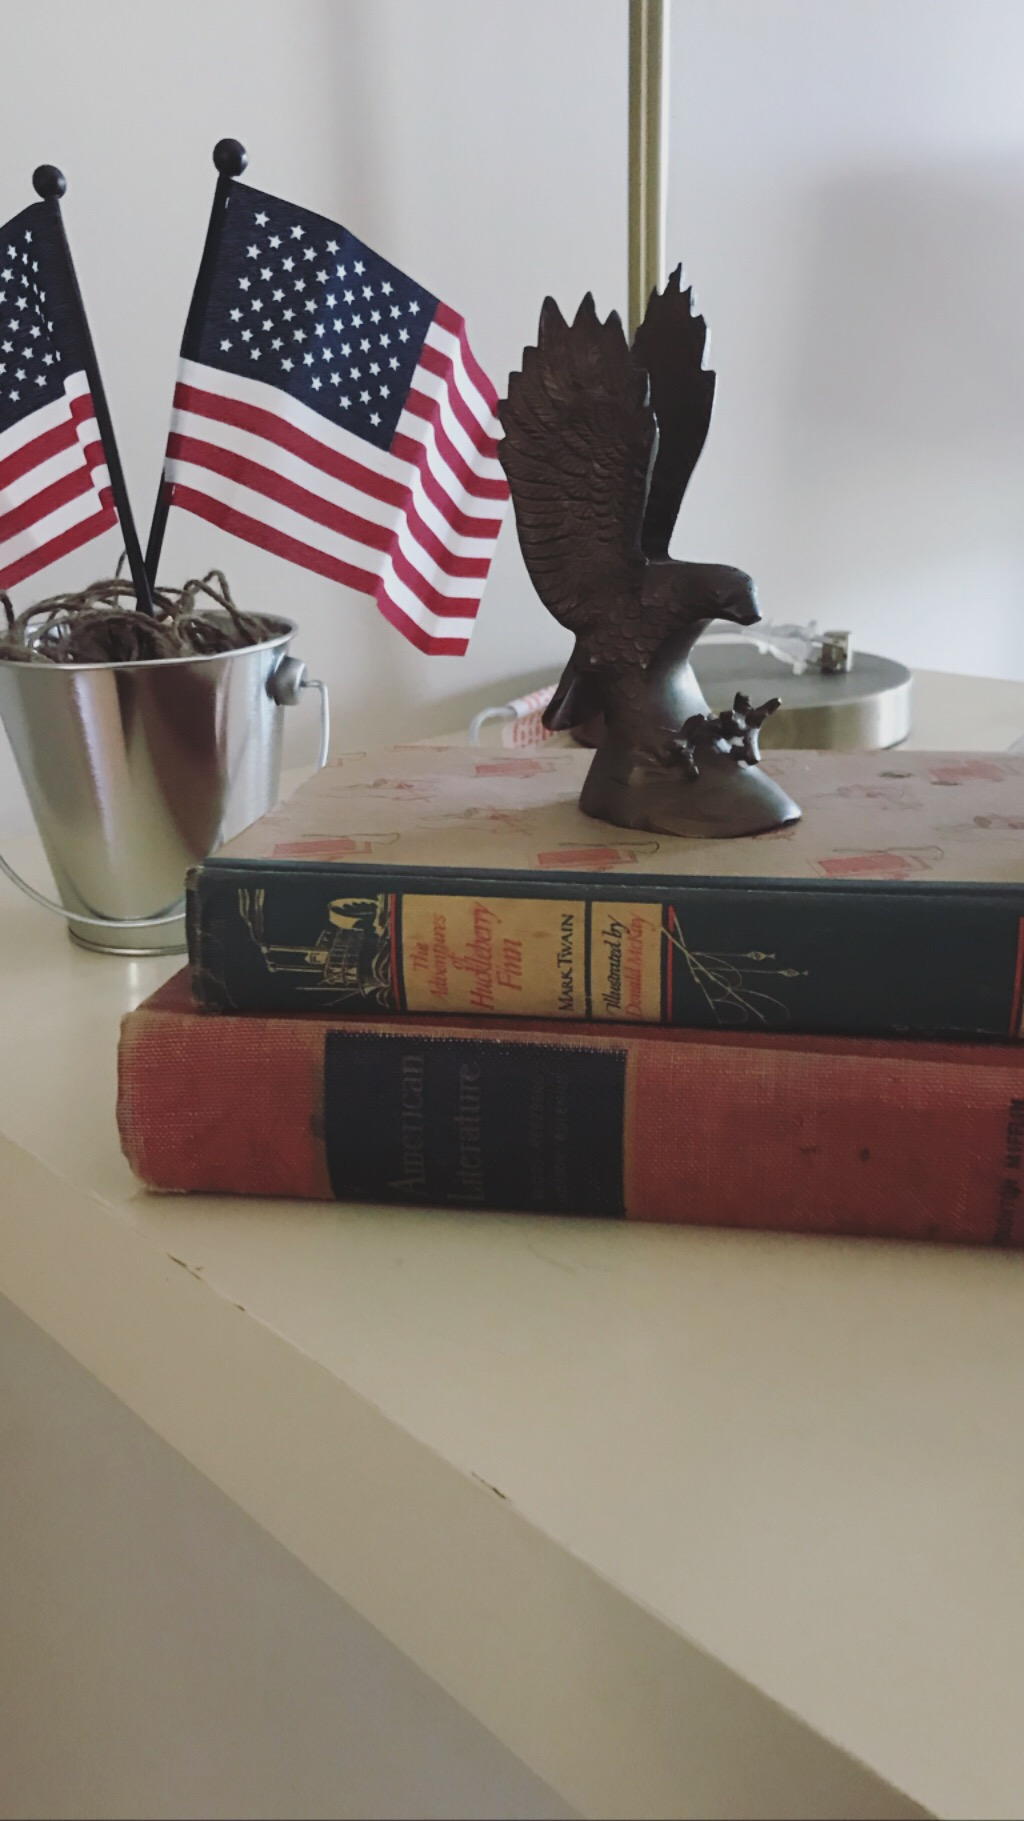 "The Adventures of Huckleberry Finn, American Literature, and brass eagle. - Collecting antique books has become almost like a sport to me. I love to search and search and find special and unique books with meaning. Finding a 1948 copy of The Adventures of Huckleberry Finn was extra special—it brought a piece of Missouri and American history to the decor.The American Literature textbook is awesome. Property of the State of Texas, it sold for $1.53 in 1941. There is writing all over the book—names, pictures, notes, love notes—right after the statement ""Pupils must not write on any page of this textbook."""